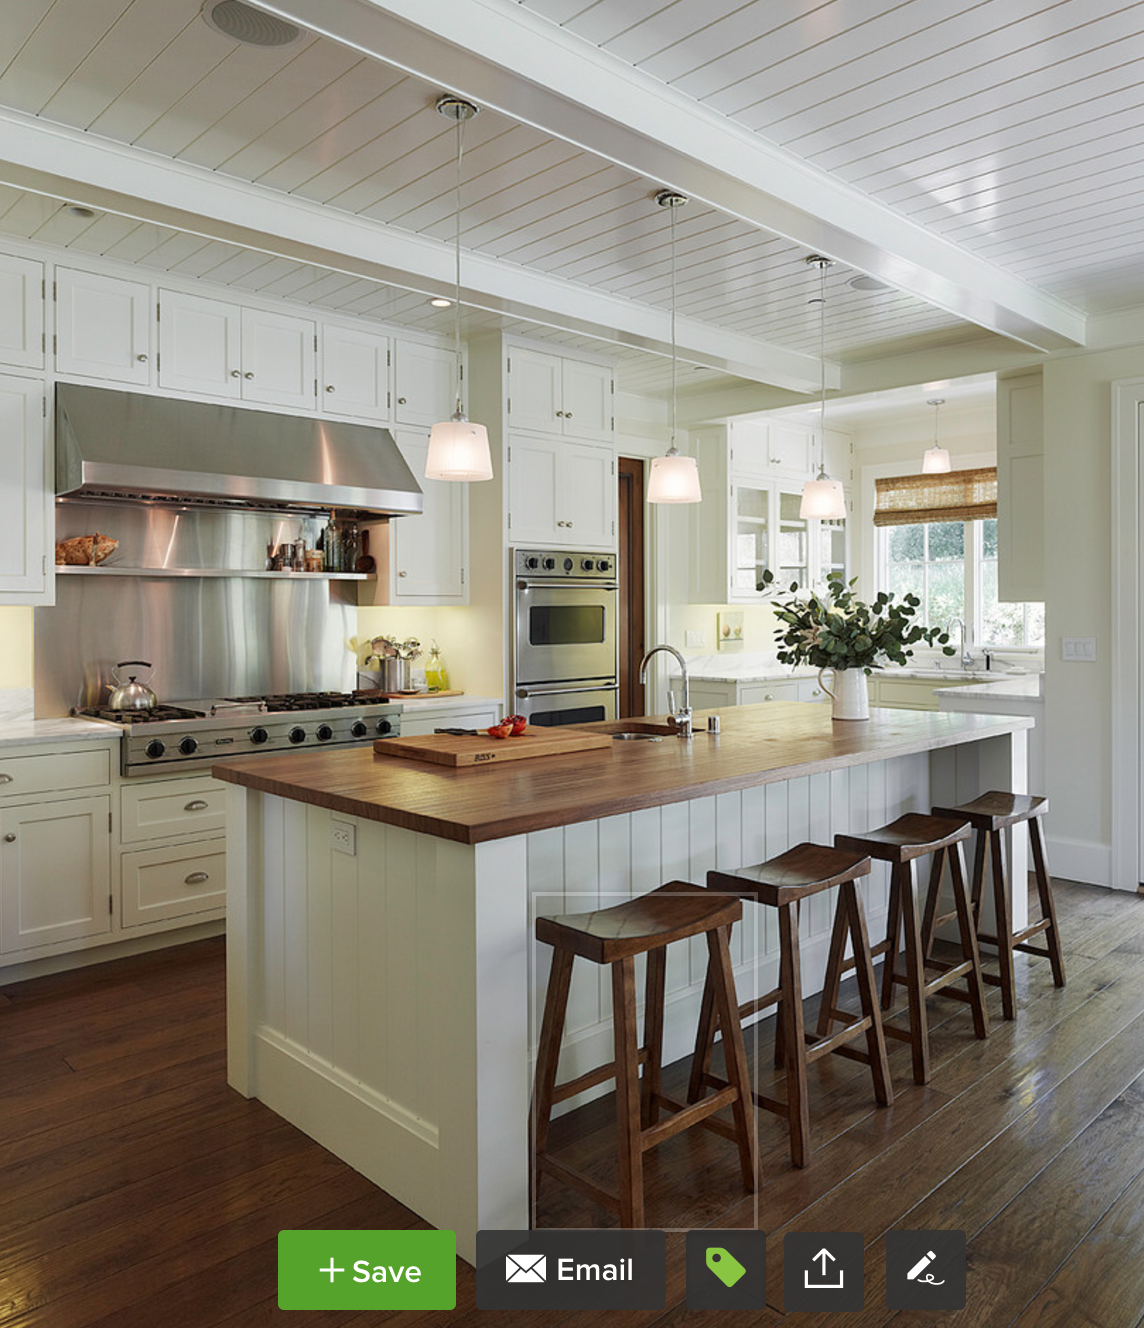 Vertical Shiplap On Island Country Kitchen Decor Diy Kitchen Decor Kitchen Inspirations